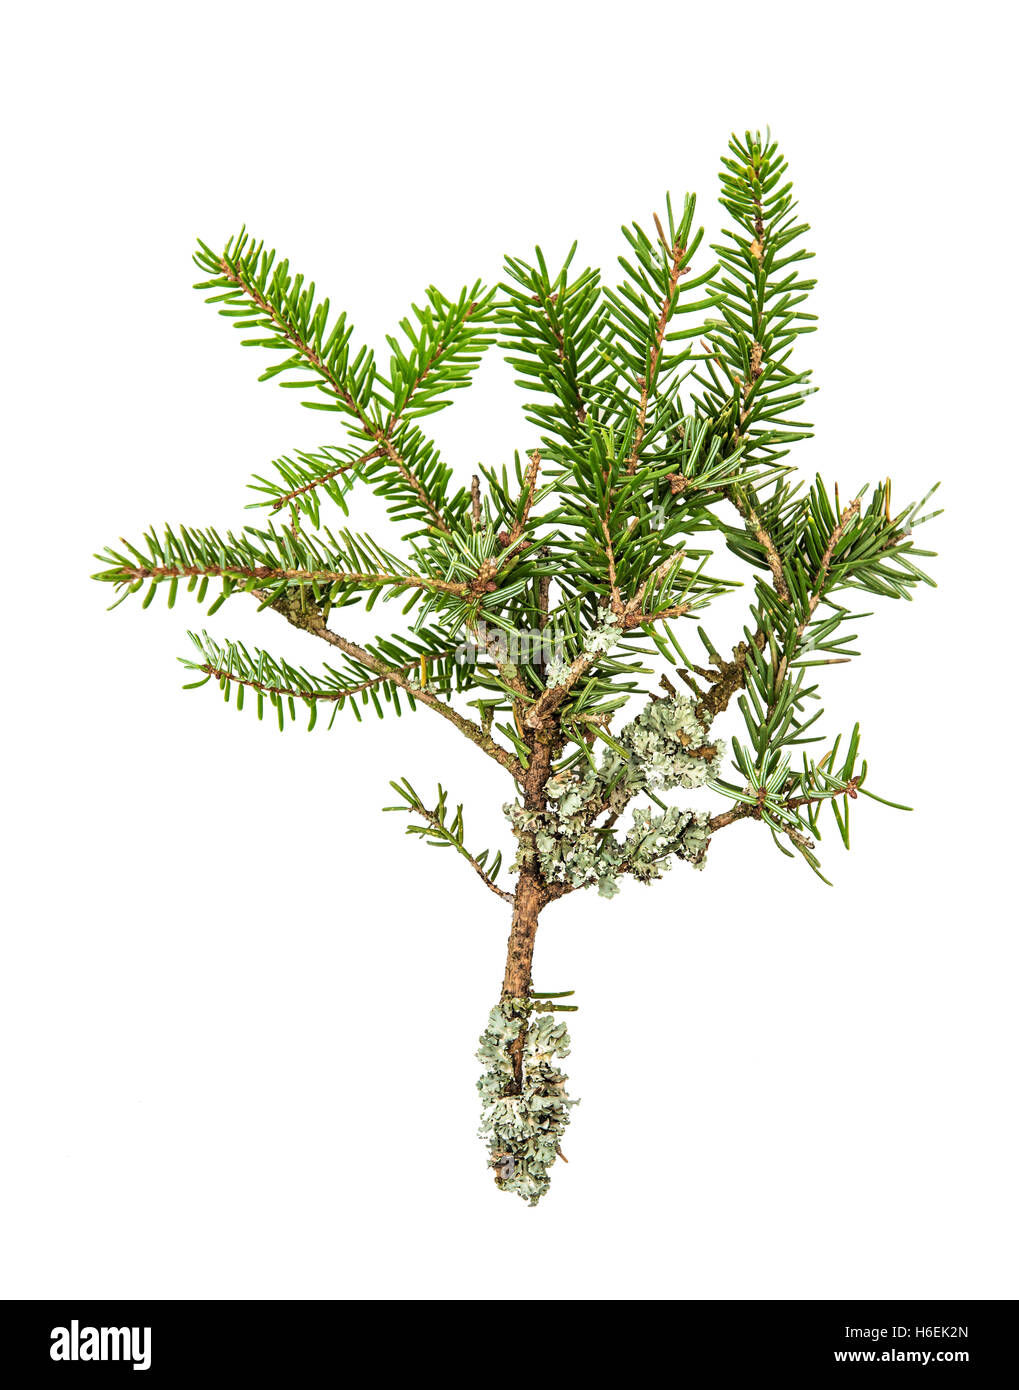 Pine sprig. Fresh green fir branches. Christmas tree isolated on white background. - Stock Image